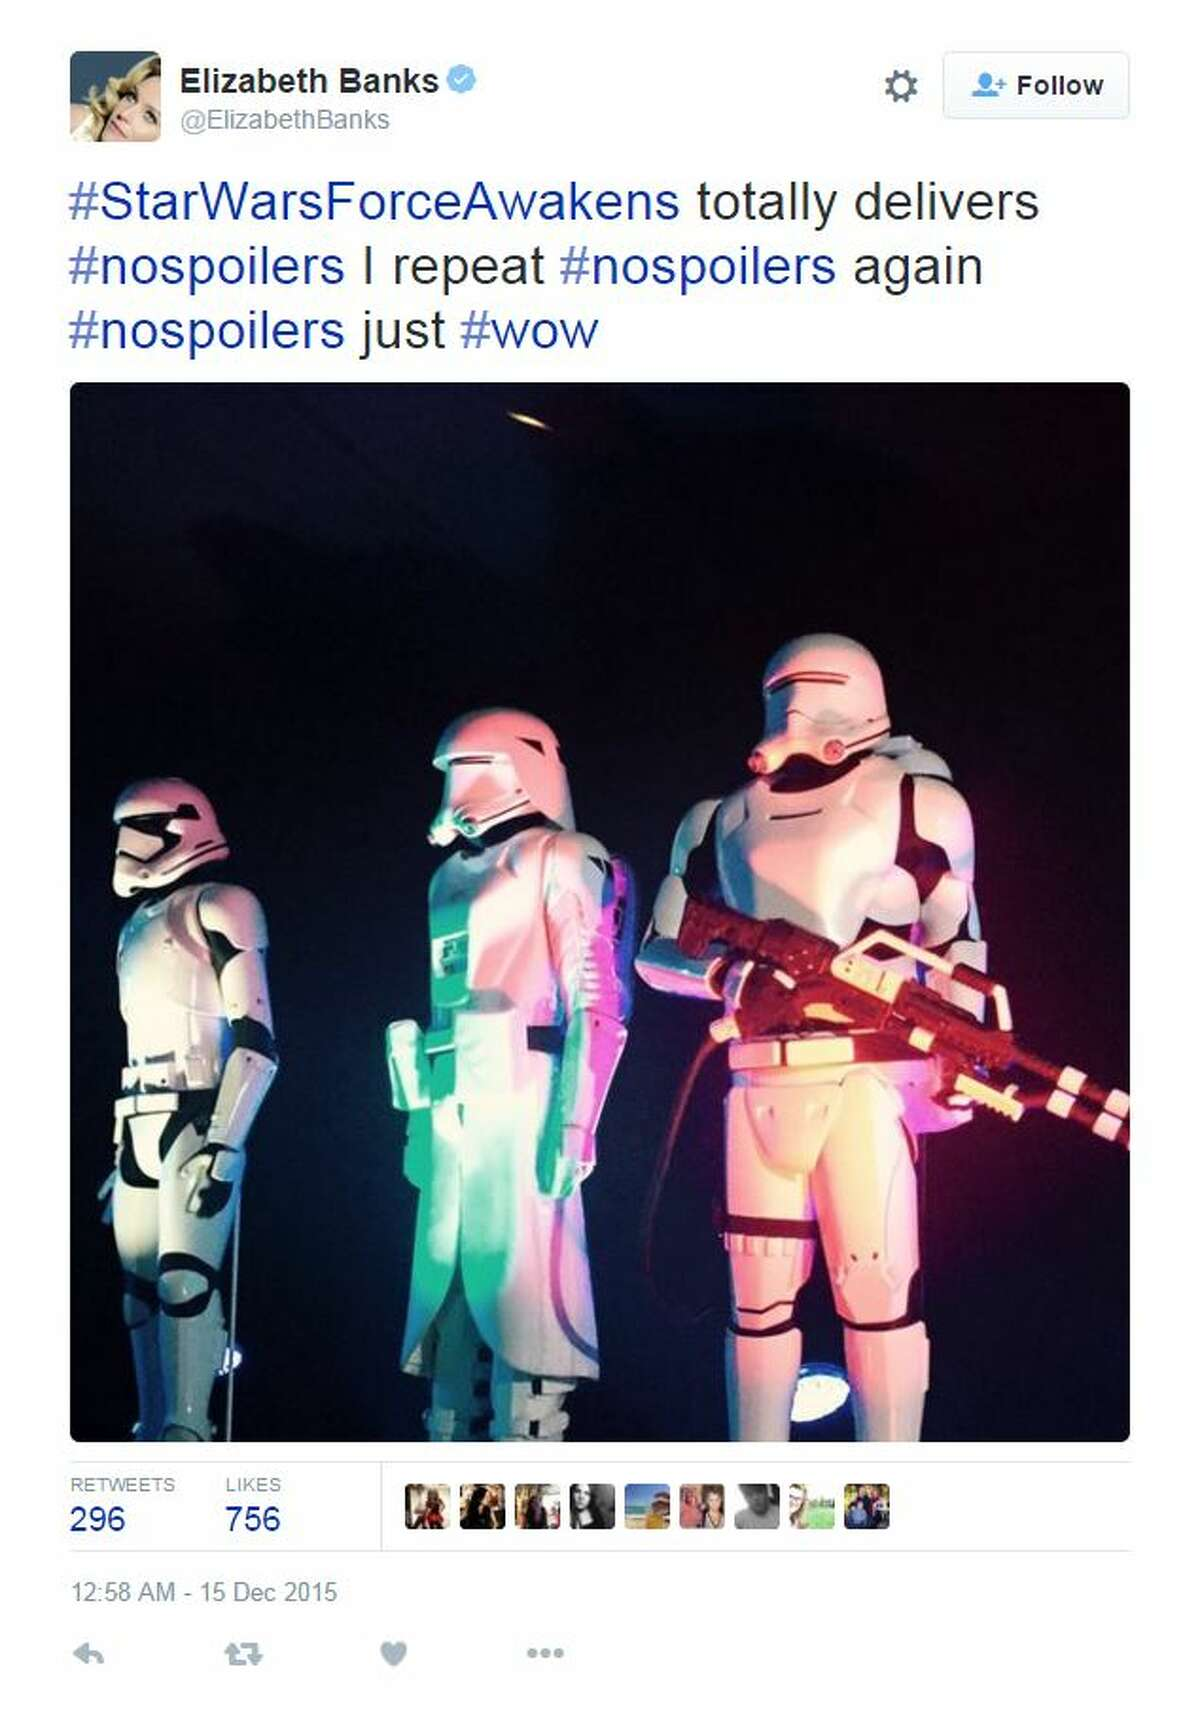 """Elizabeth Banks, actress and director (""""The Hunger Games""""; """"Pitch Perfect 2""""): """"#StarWarsForceAwakens totally delivers #nospoilers I repeat #nospoilers again #nospoilers just #wow"""""""